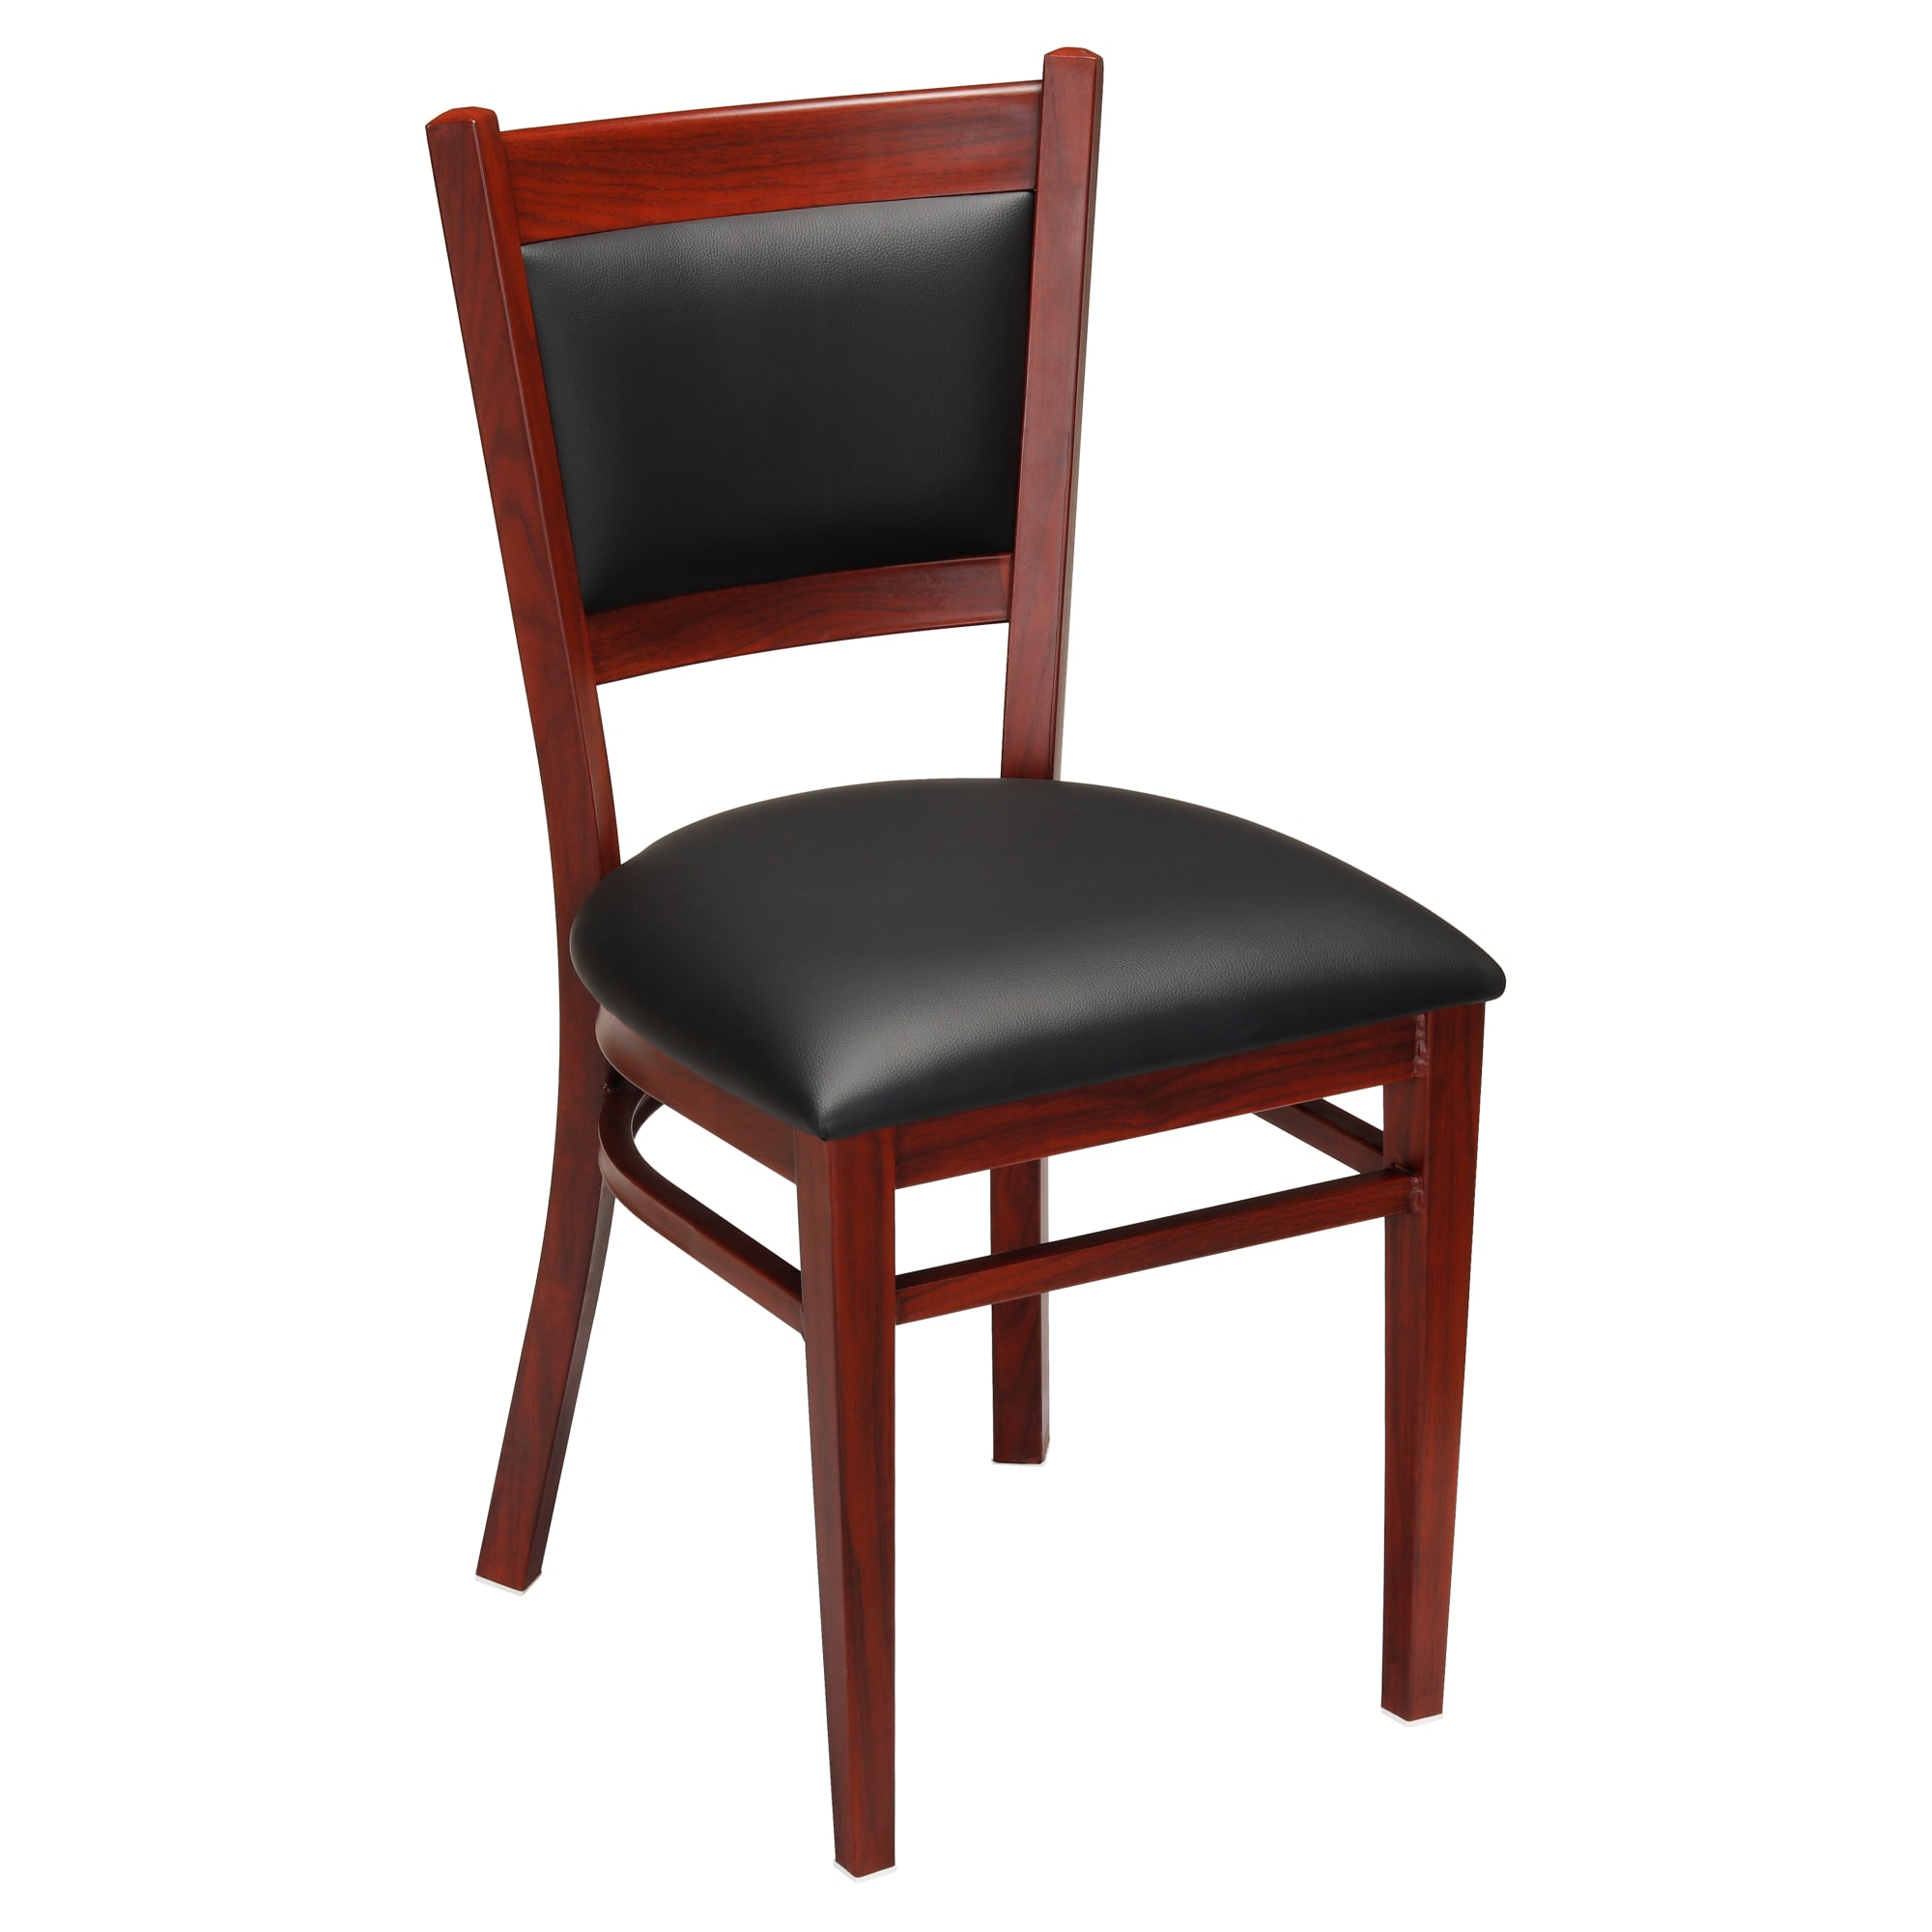 Metal Padded Back Chair with Premium Wood Look Finish with Metal Padded Back Chair with Premium Wood Look Finish